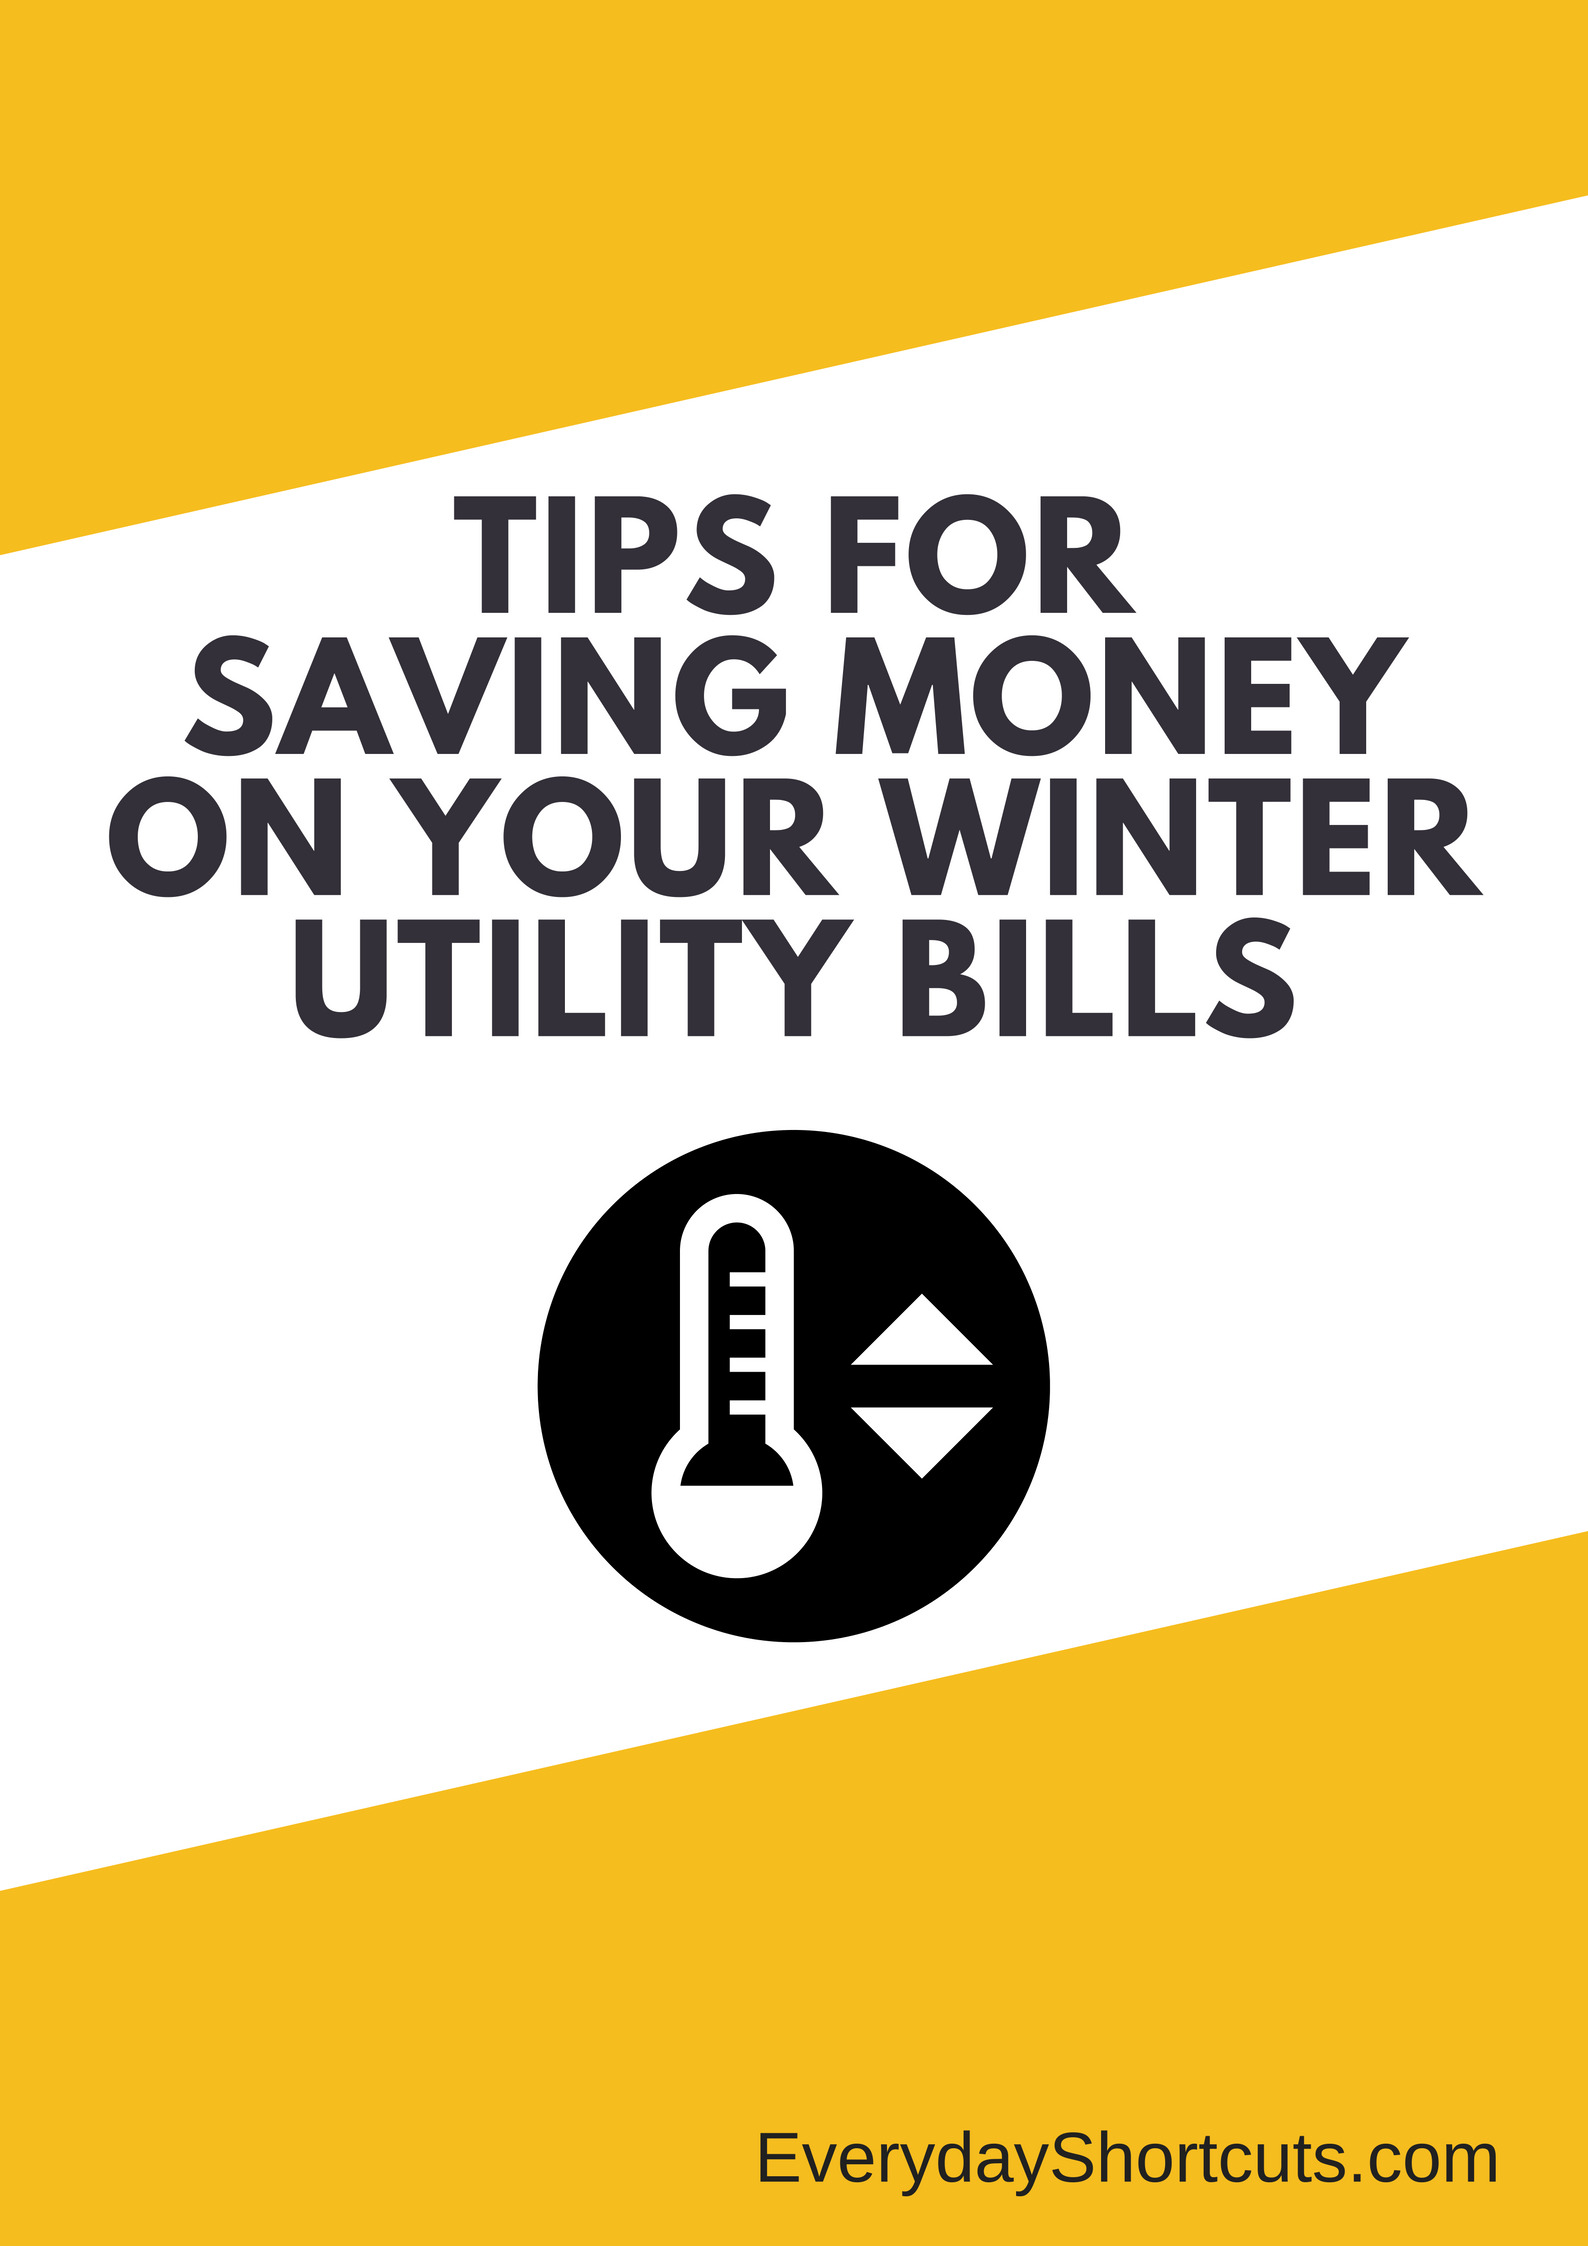 Tips to Saving Money on Your Winter Utility Bills